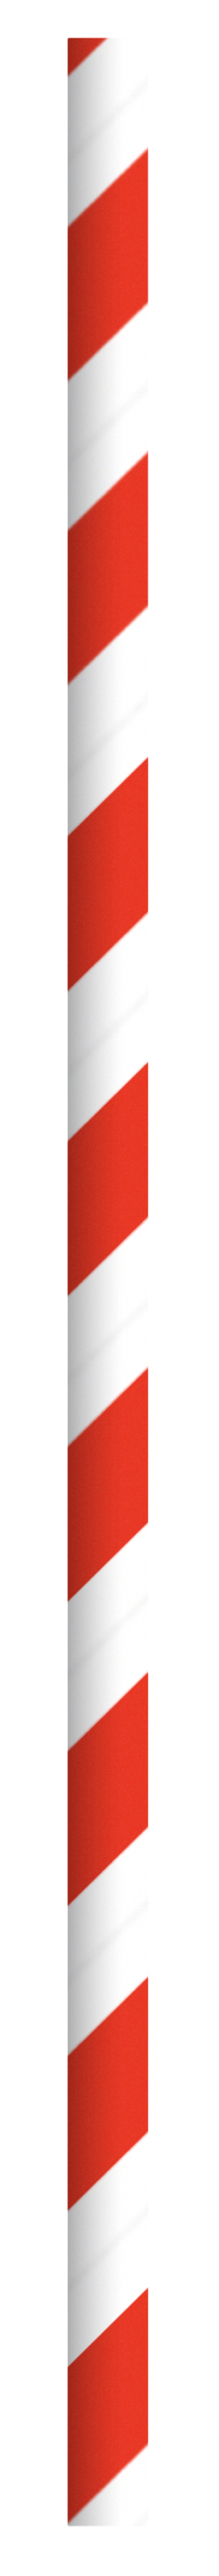 Durable Red & White Striped Paper Straws  - 7.75  Inches